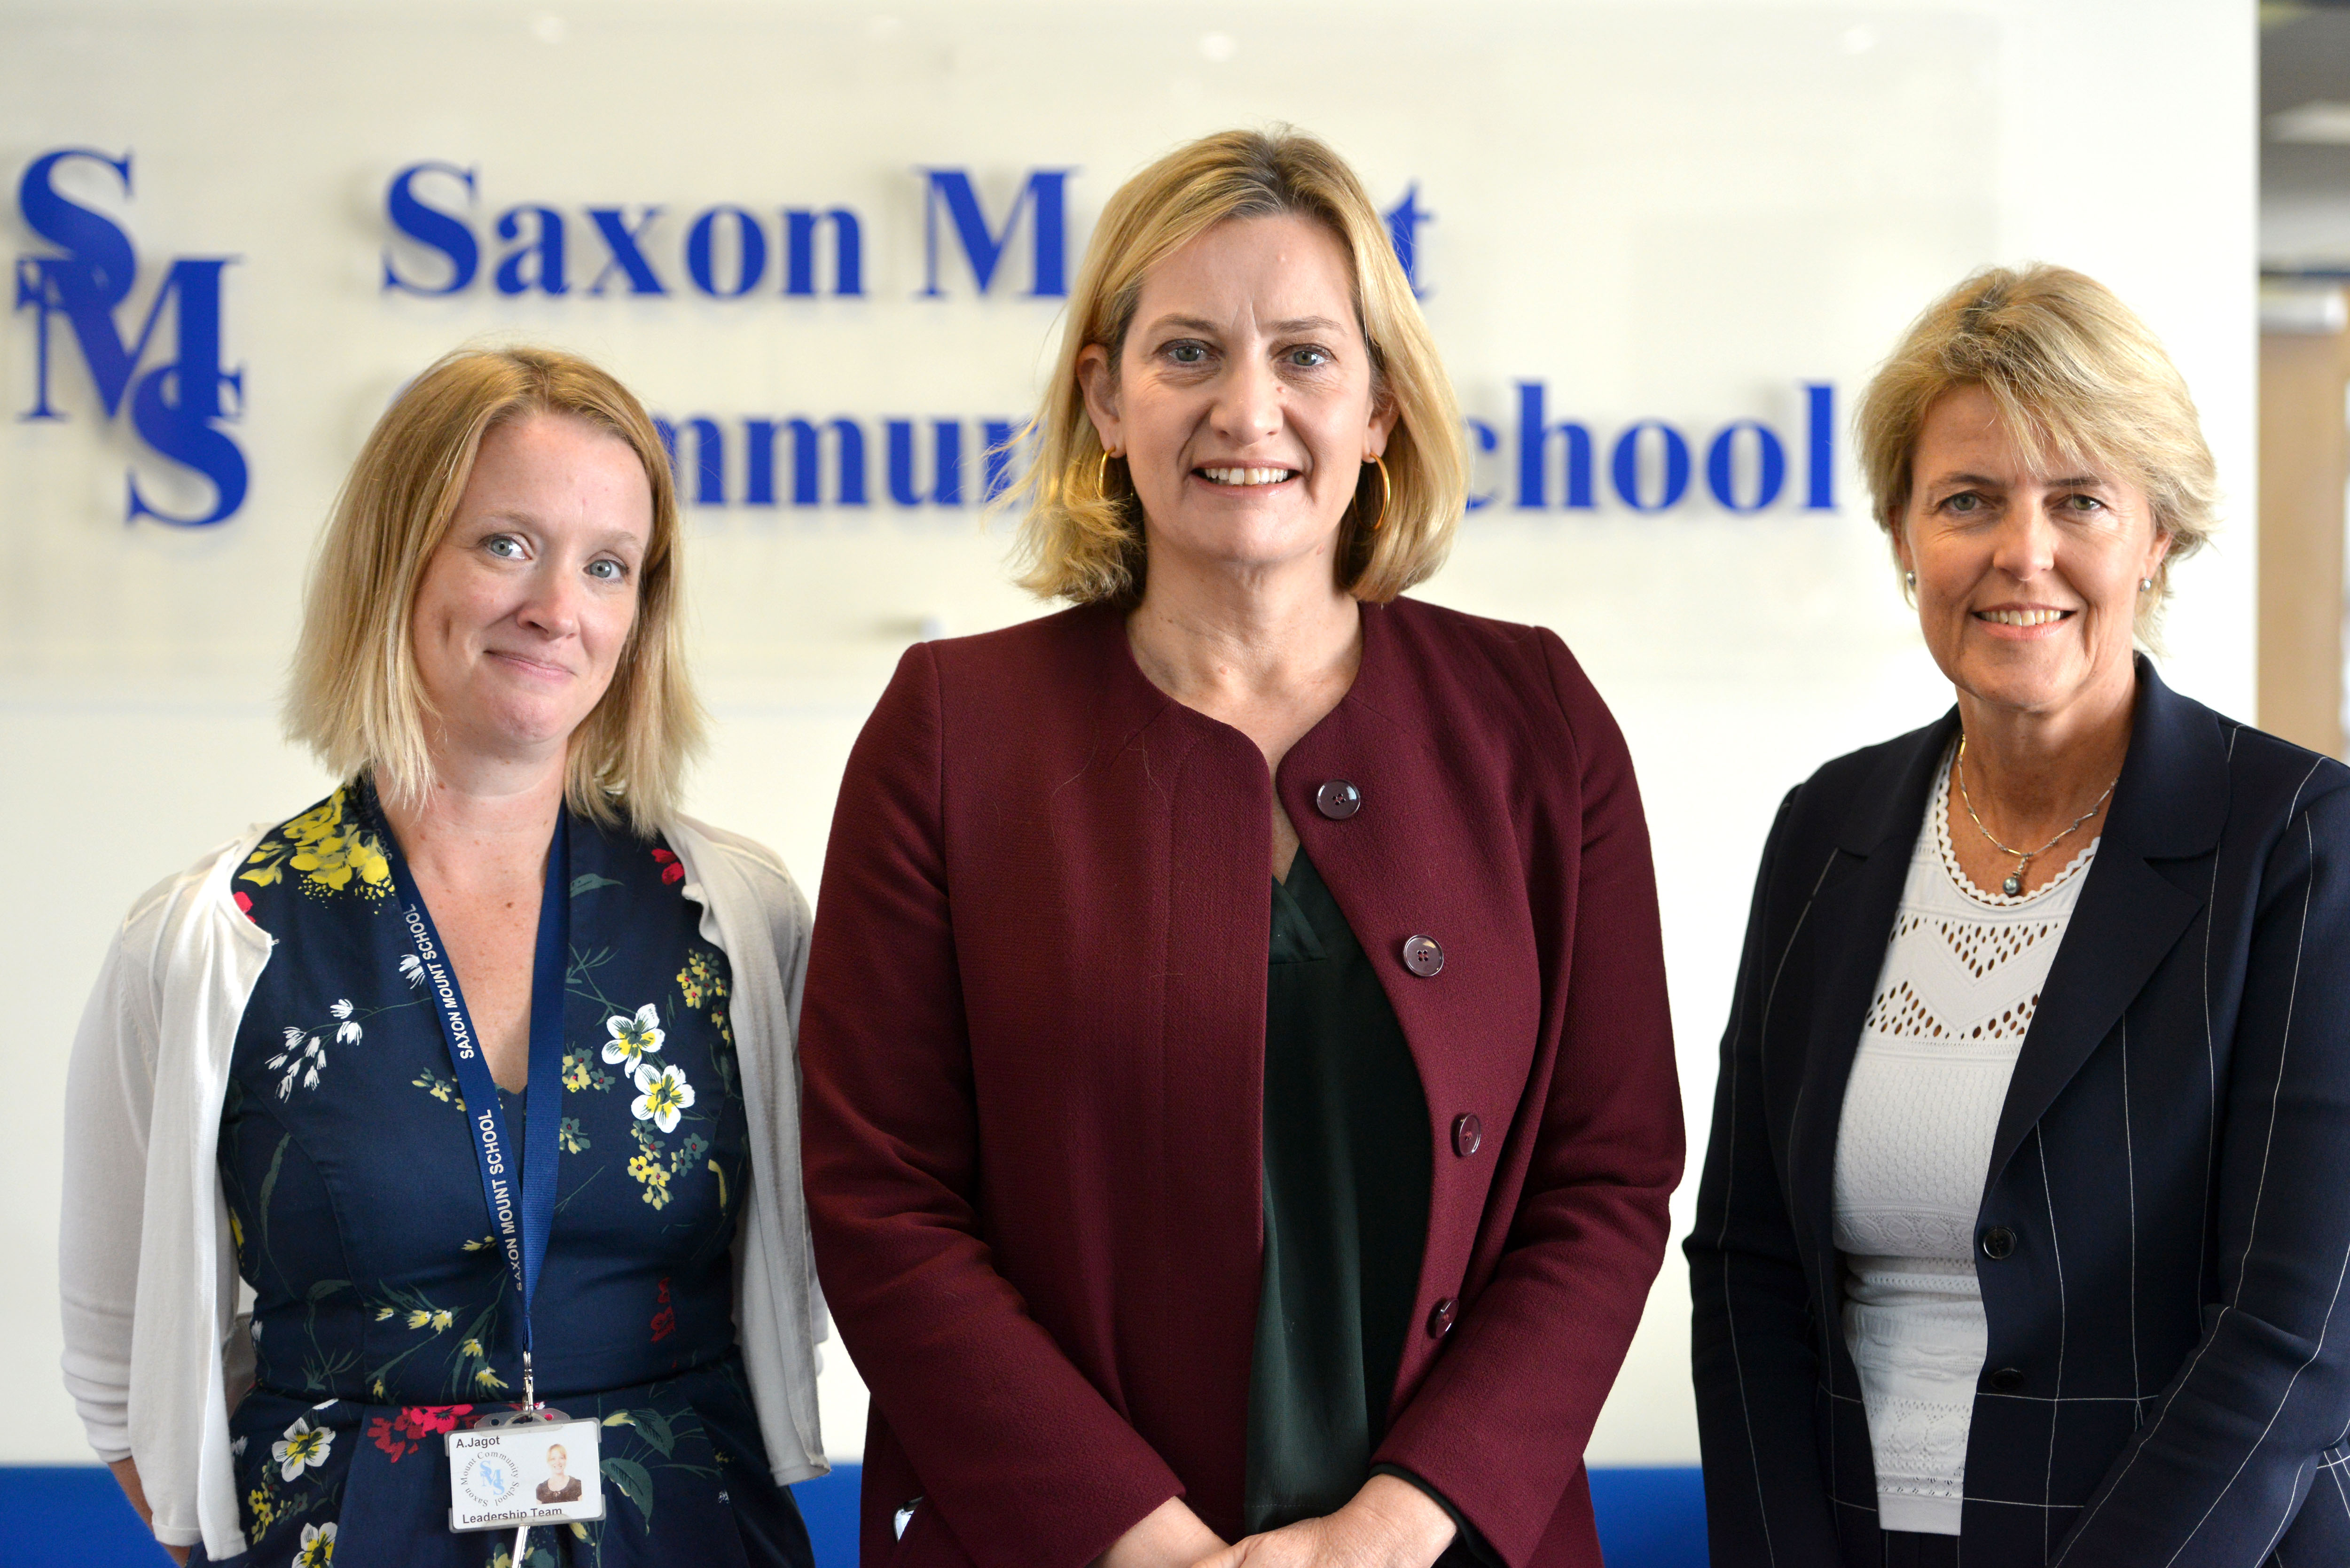 'Outstanding' work has a 'far-reaching' effect on pupils